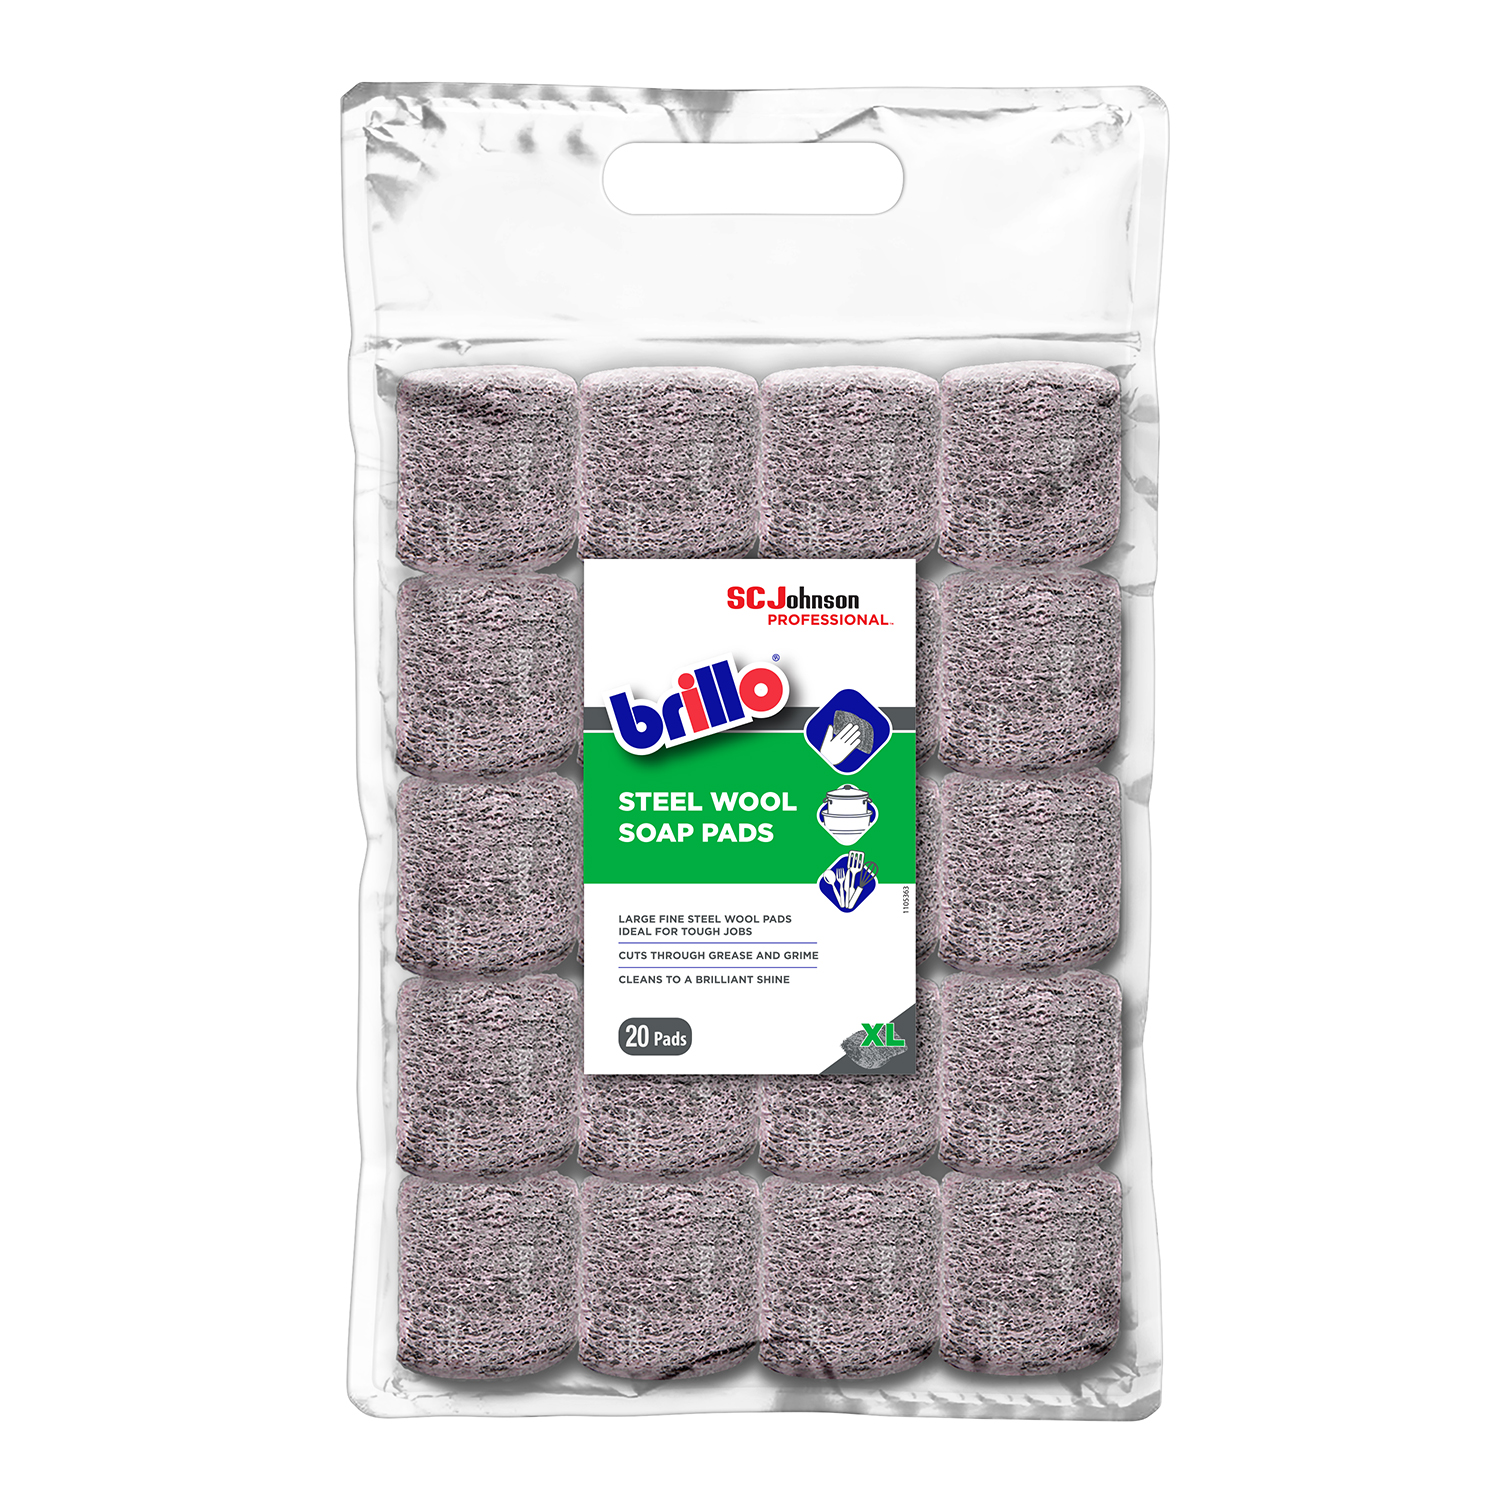 669311-Brillo-Steel-Wool-Soap-Pads